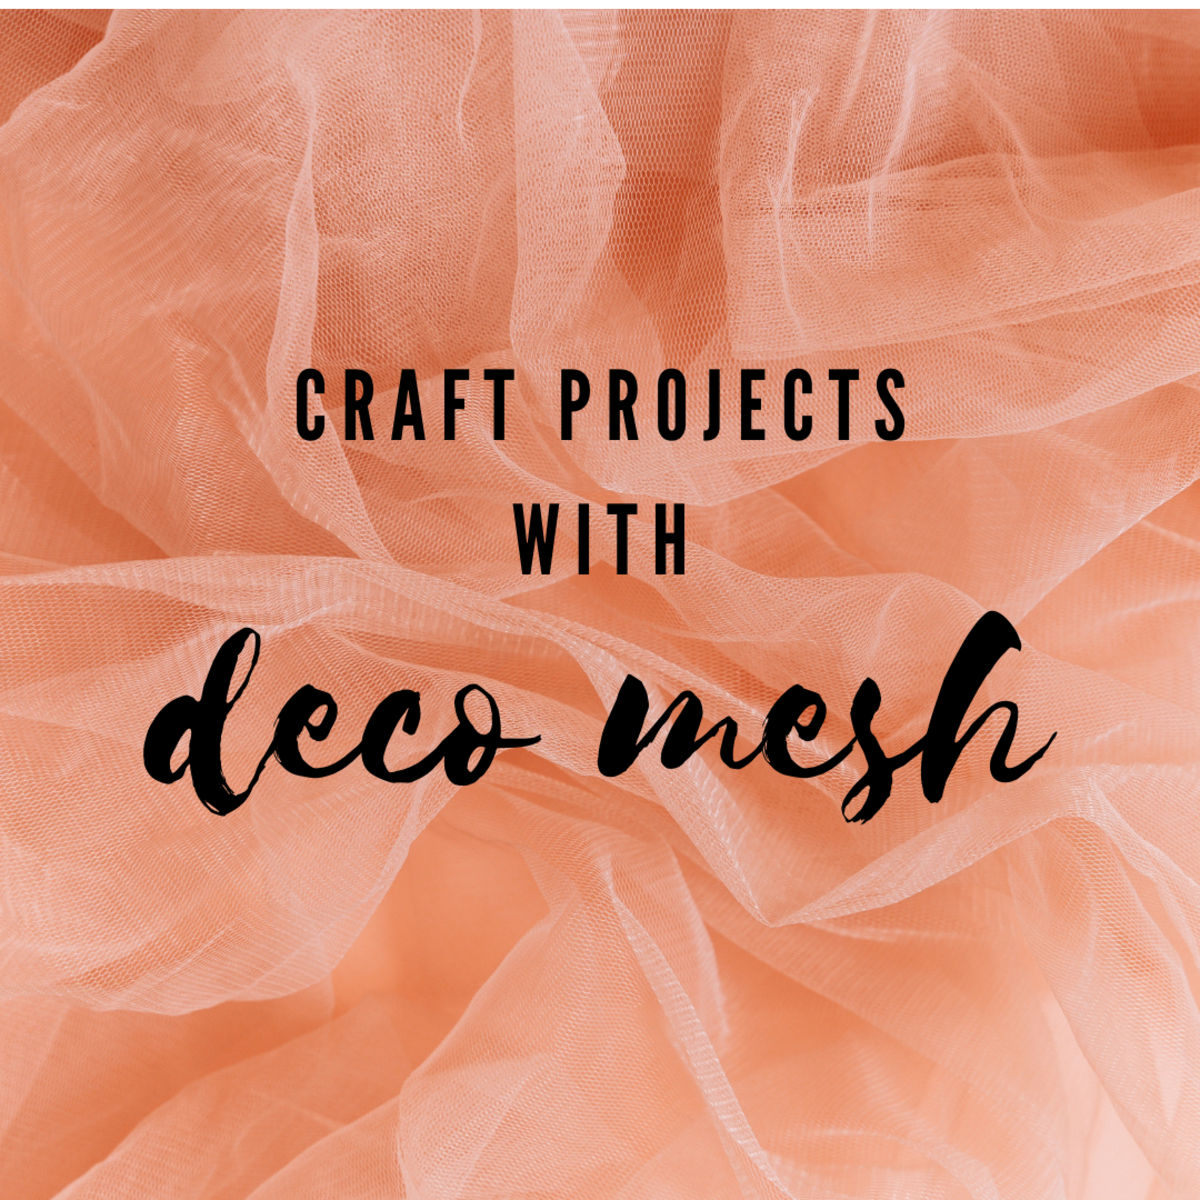 From holidays to celebrations, deco mesh is the perfect craft material.